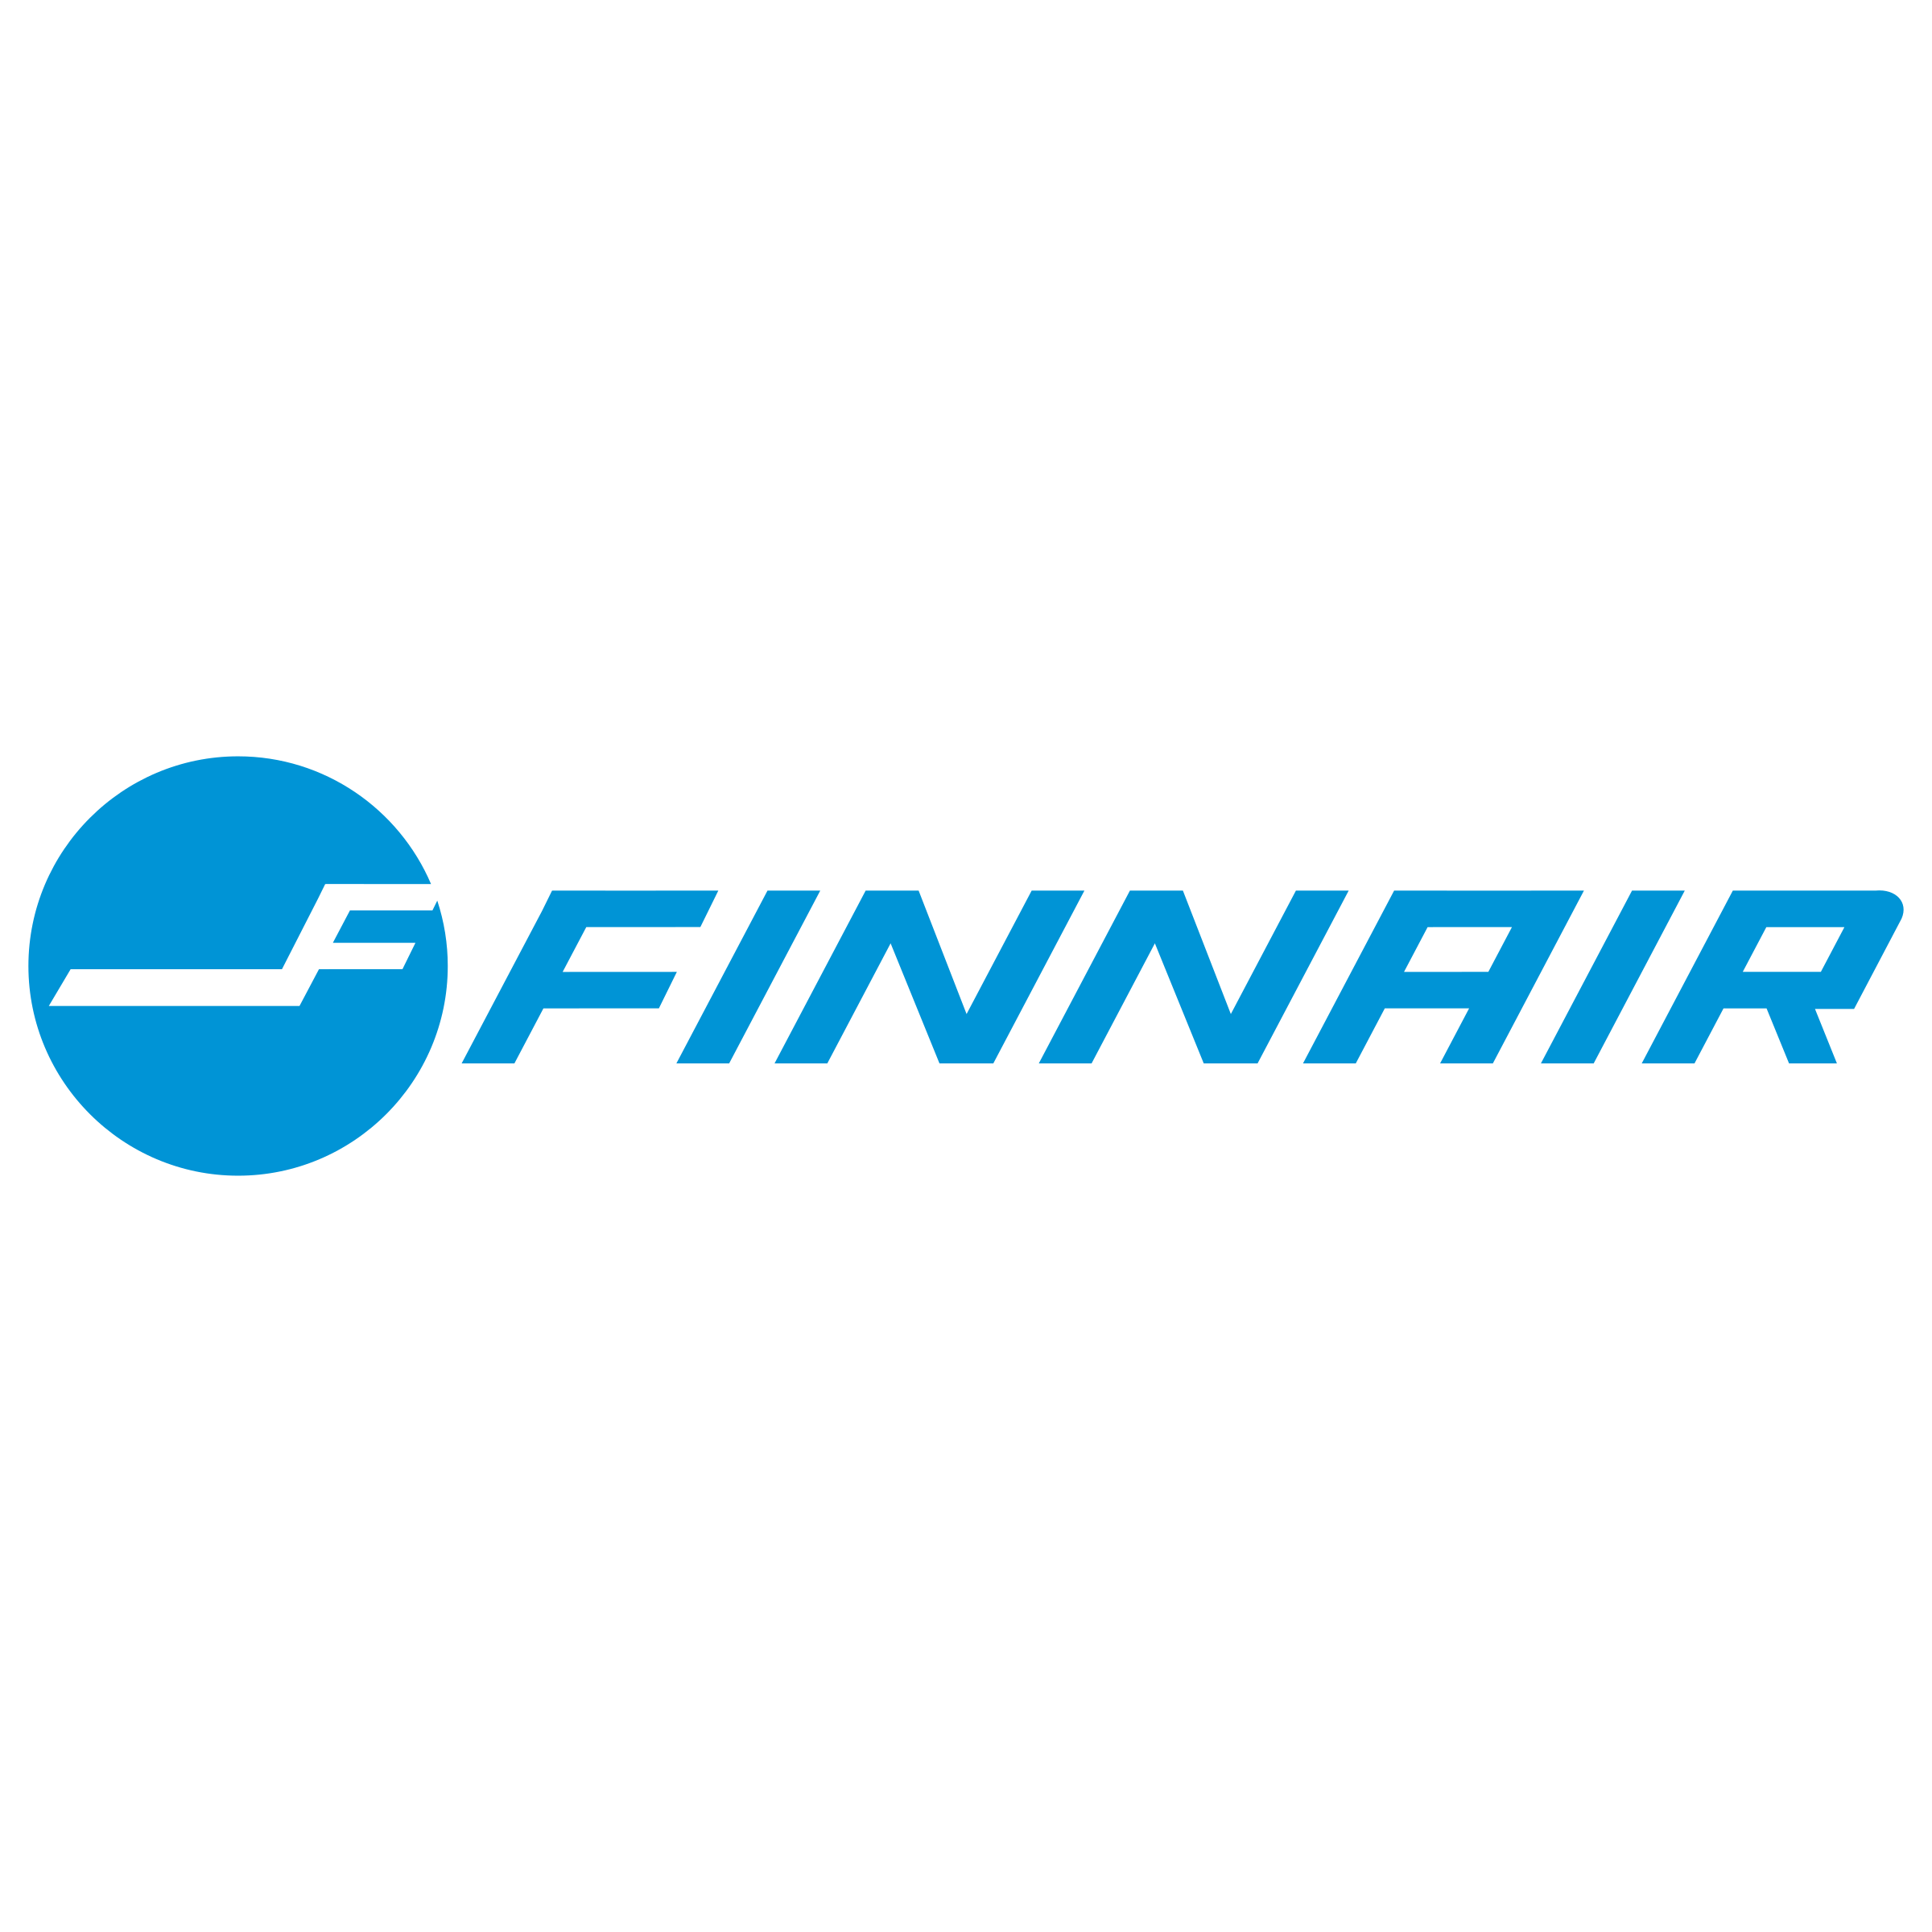 Finnair Logo PNG Transparent & SVG Vector.